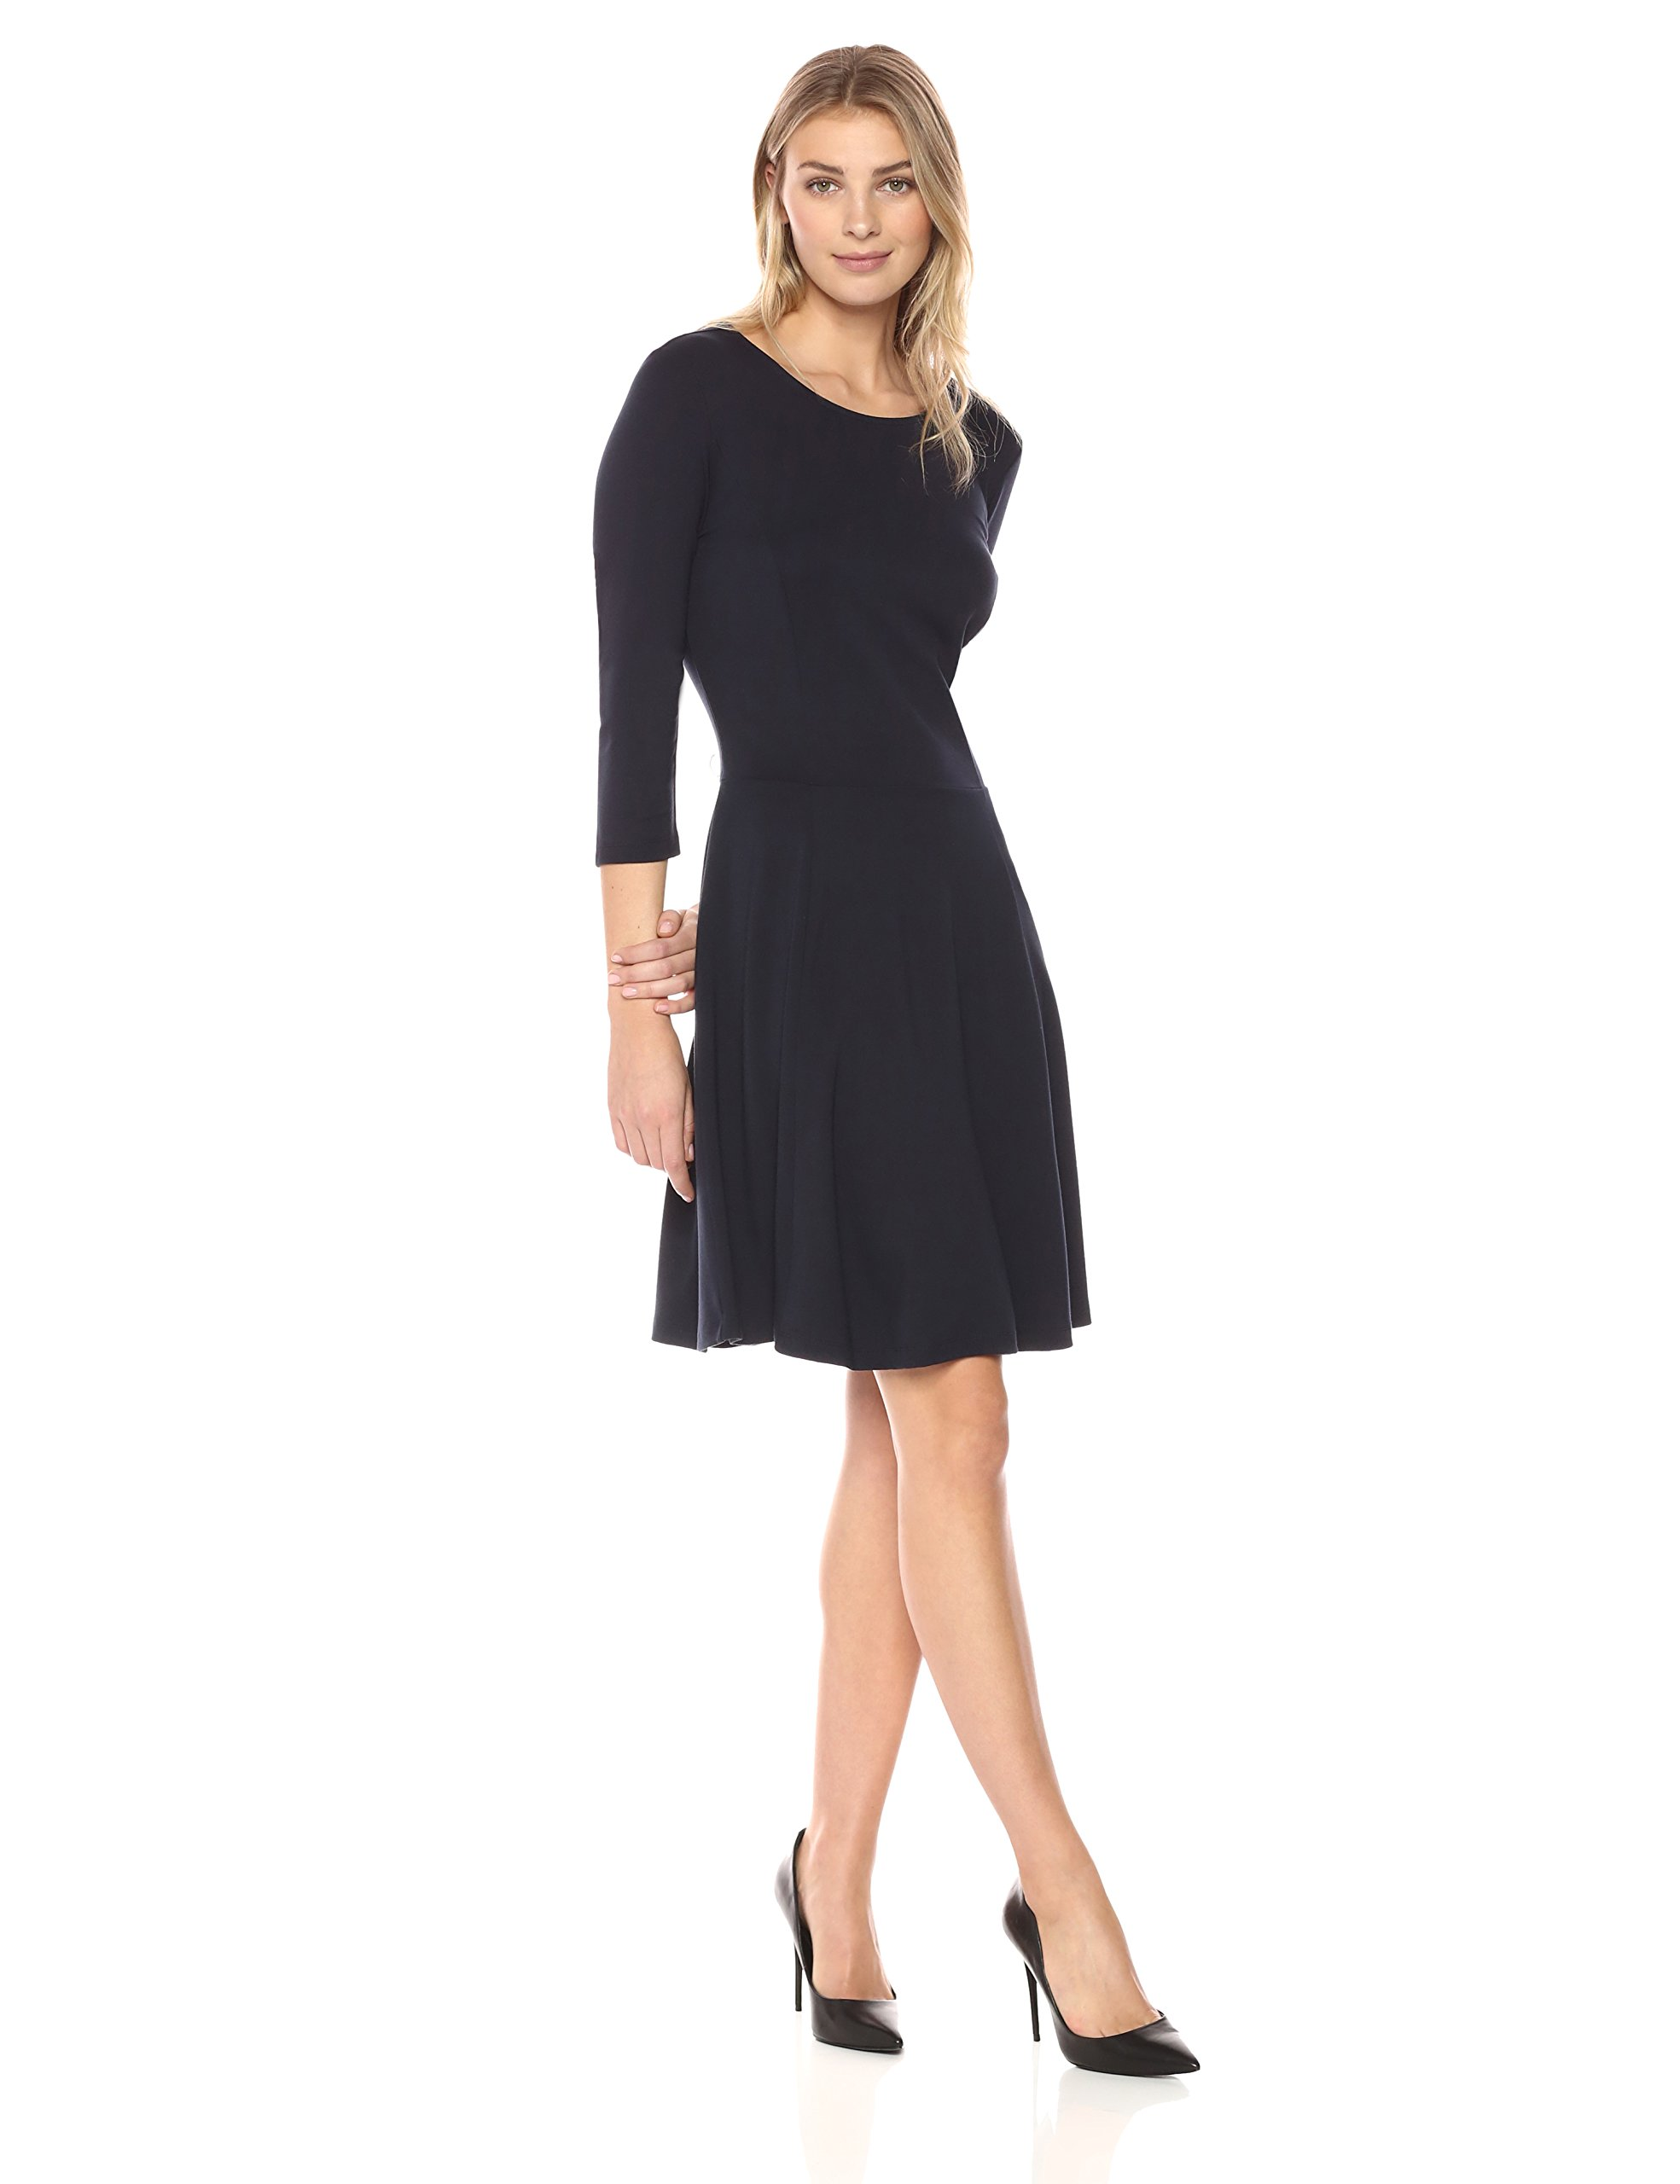 Lark & Ro Women's 3/4 Sleeve Knit Fit and Flare Dress, Black, Medium